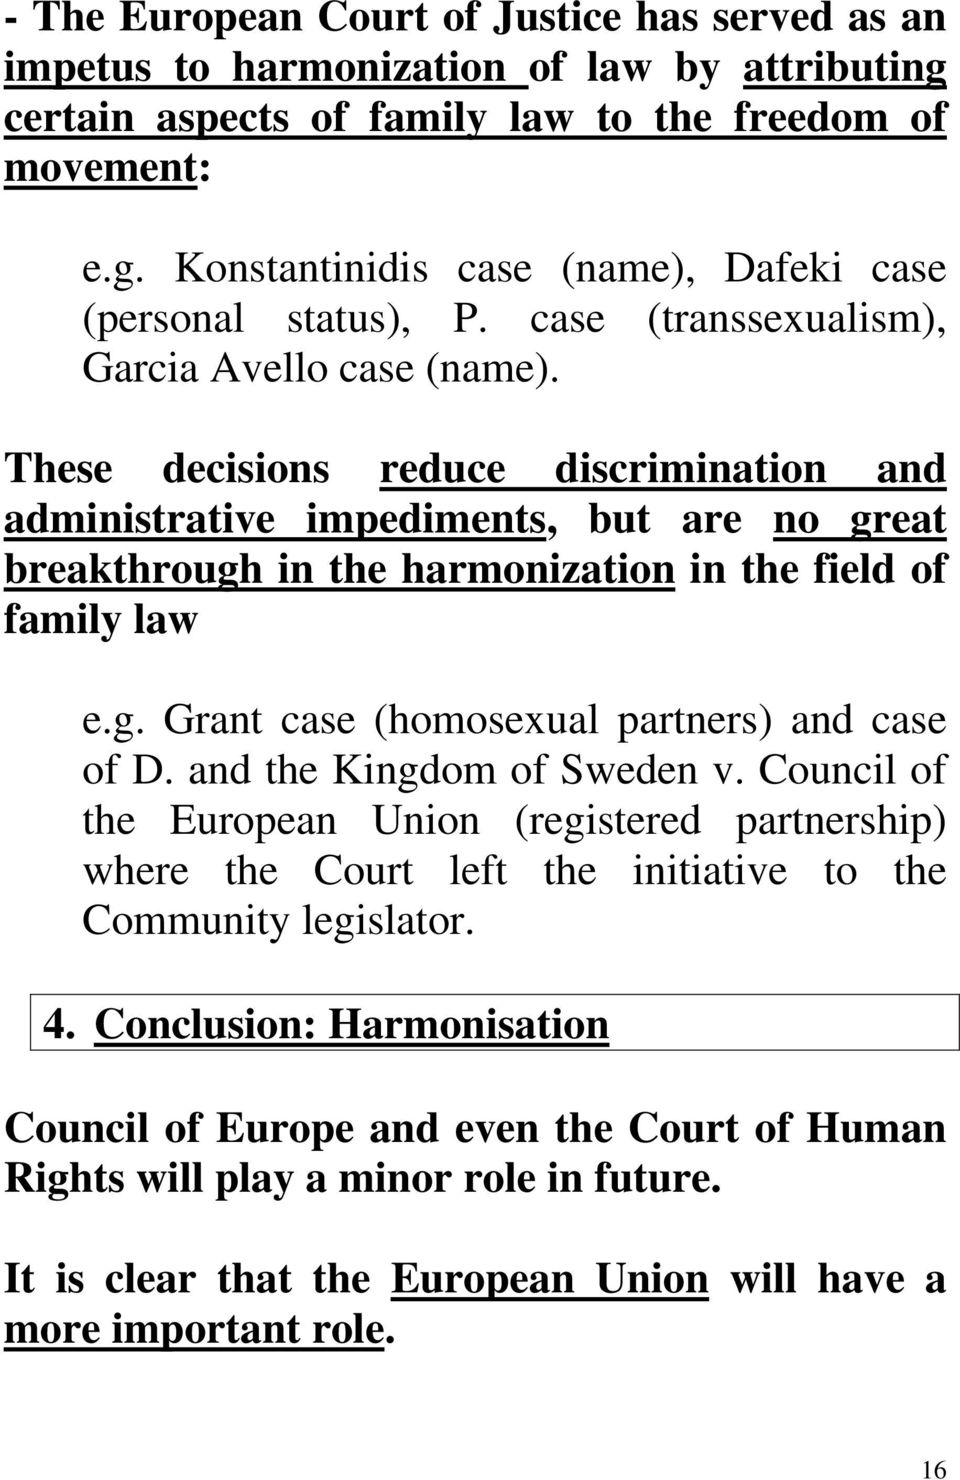 g. Grant case (homosexual partners) and case of D. and the Kingdom of Sweden v. Council of the European Union (registered partnership) where the Court left the initiative to the Community legislator.